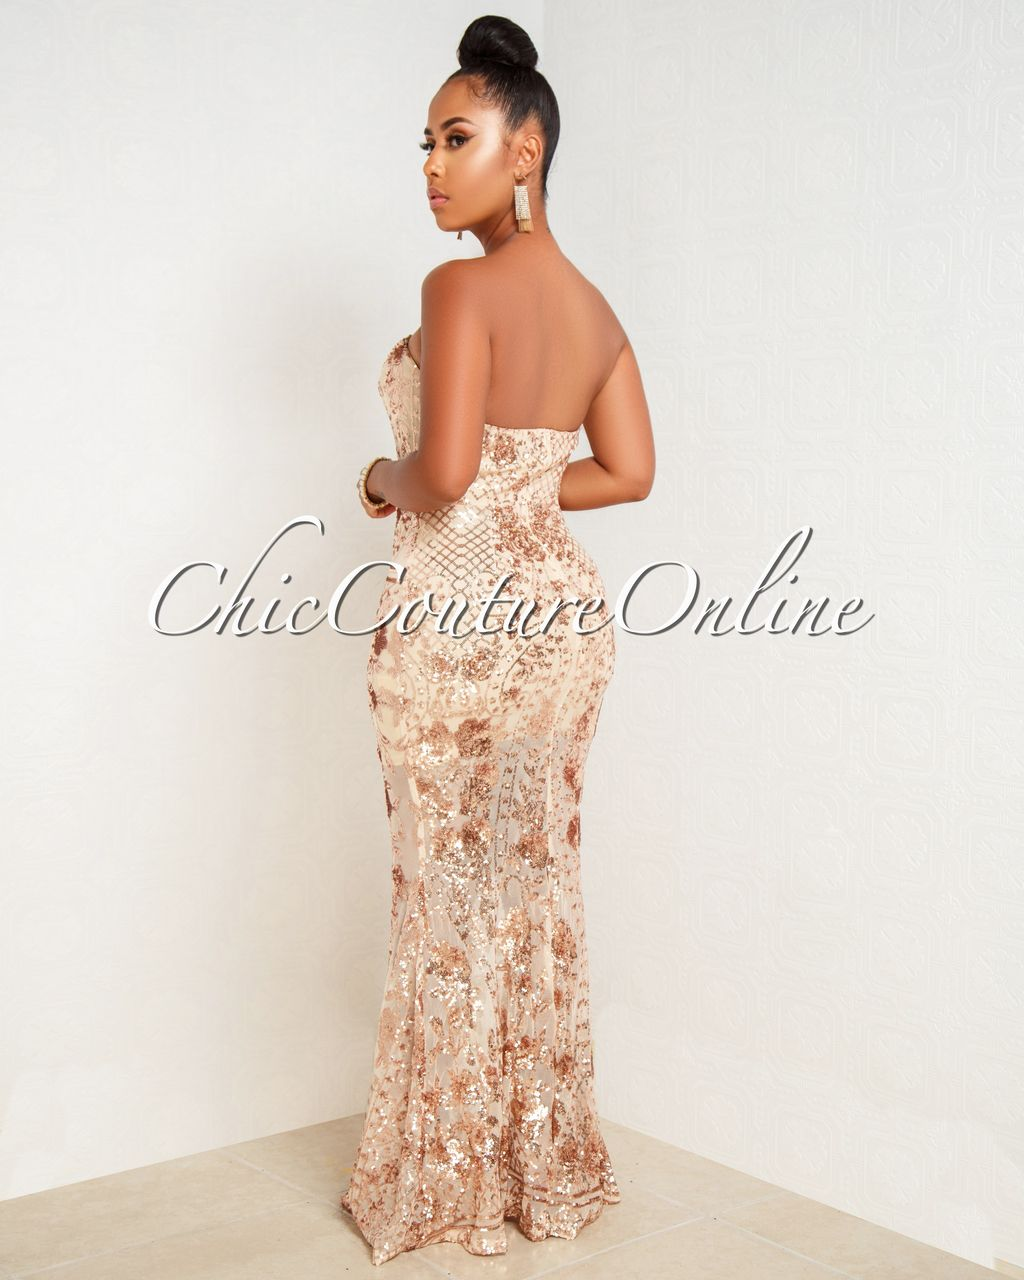 Pin On The Holiday Shop Chic Couture Online [ 1280 x 1024 Pixel ]